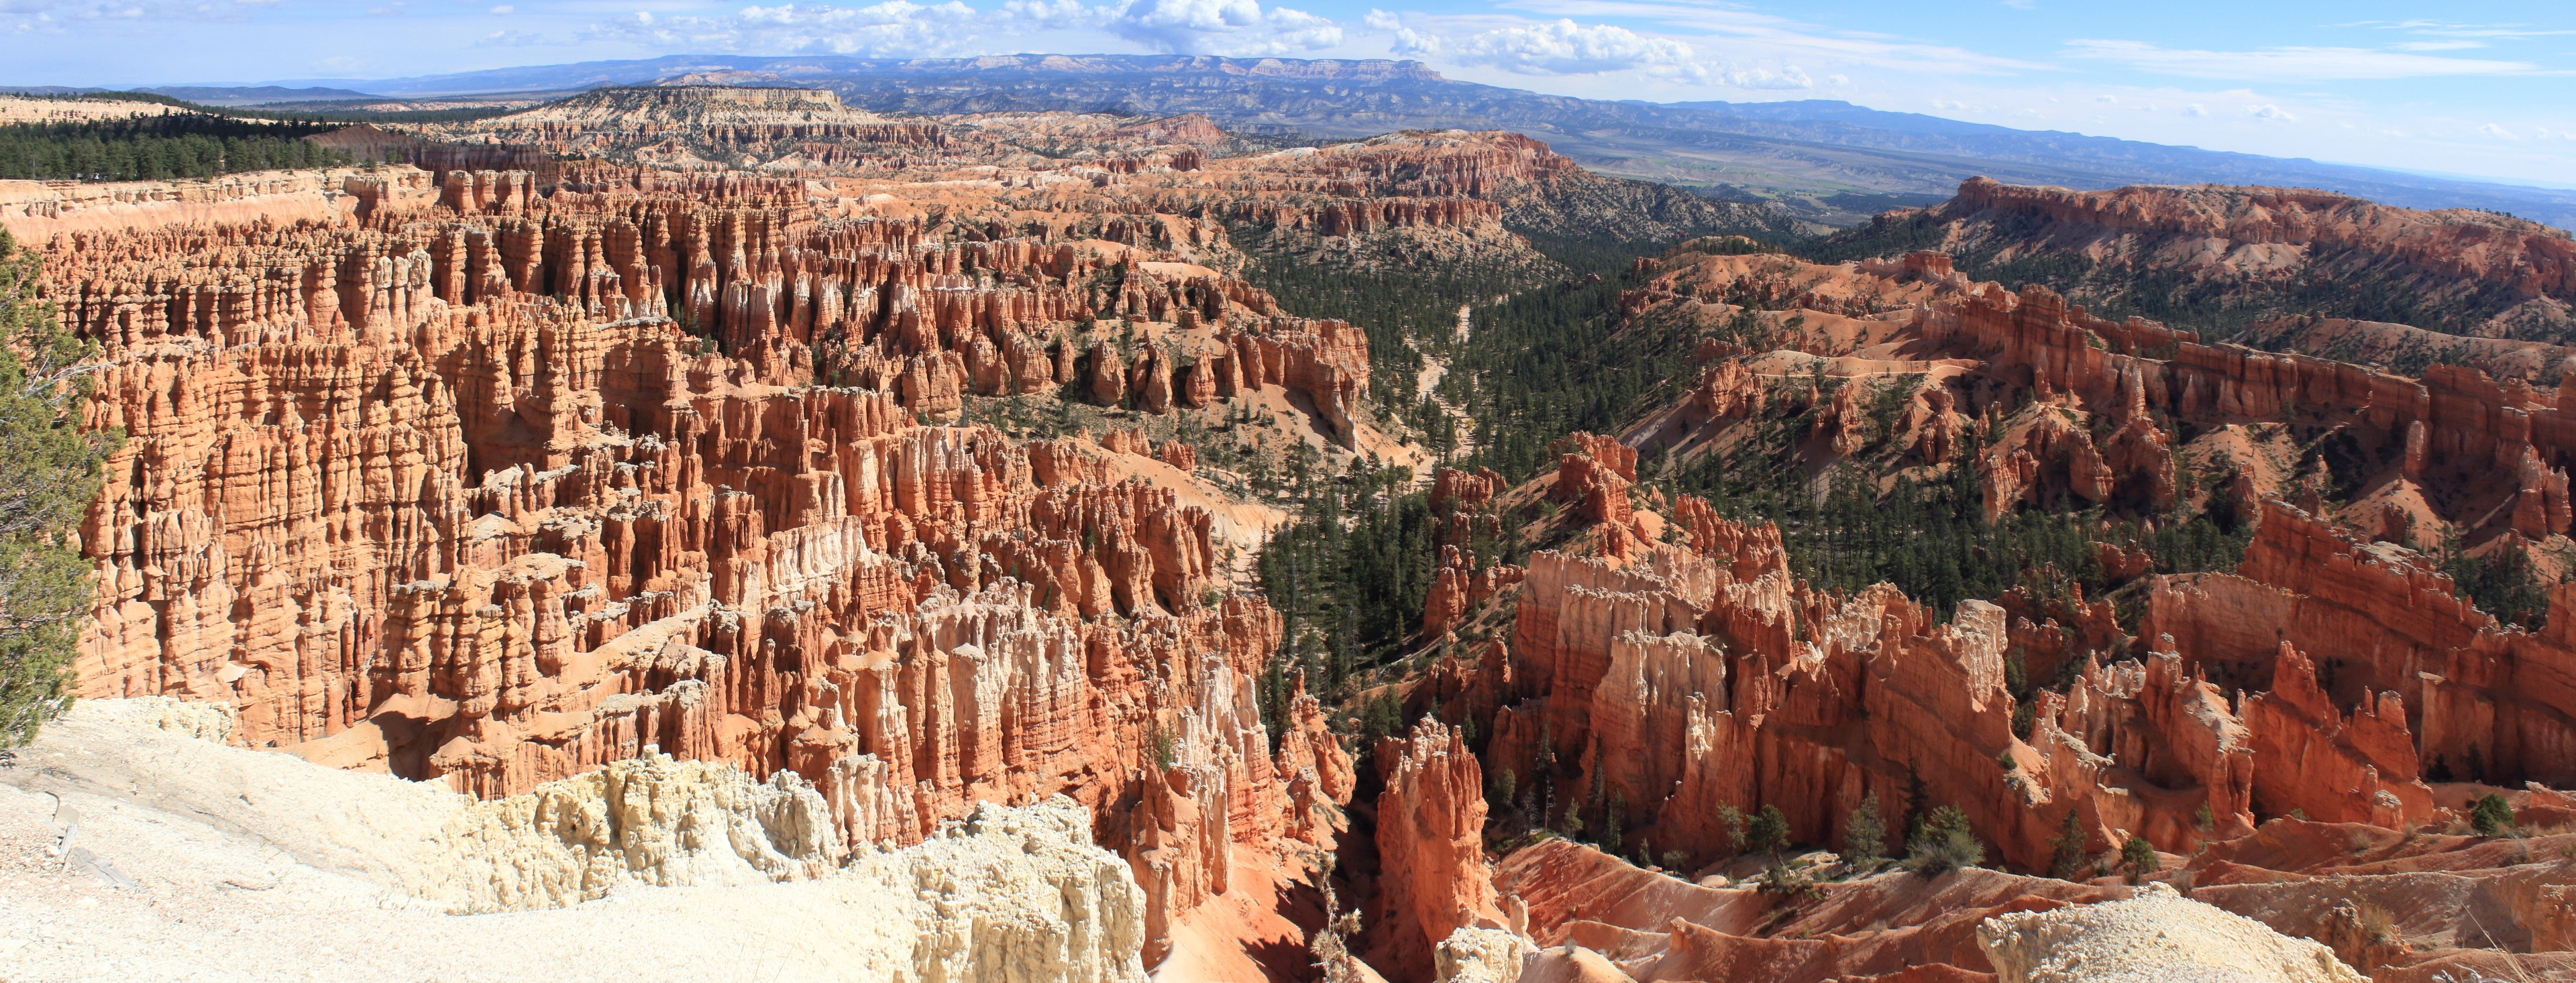 Bryce - Amphitheatre. The spectacular view from Inspiration Point. This is the heart of Bryce Canyon where the hoodoos are at their most dense concentration.